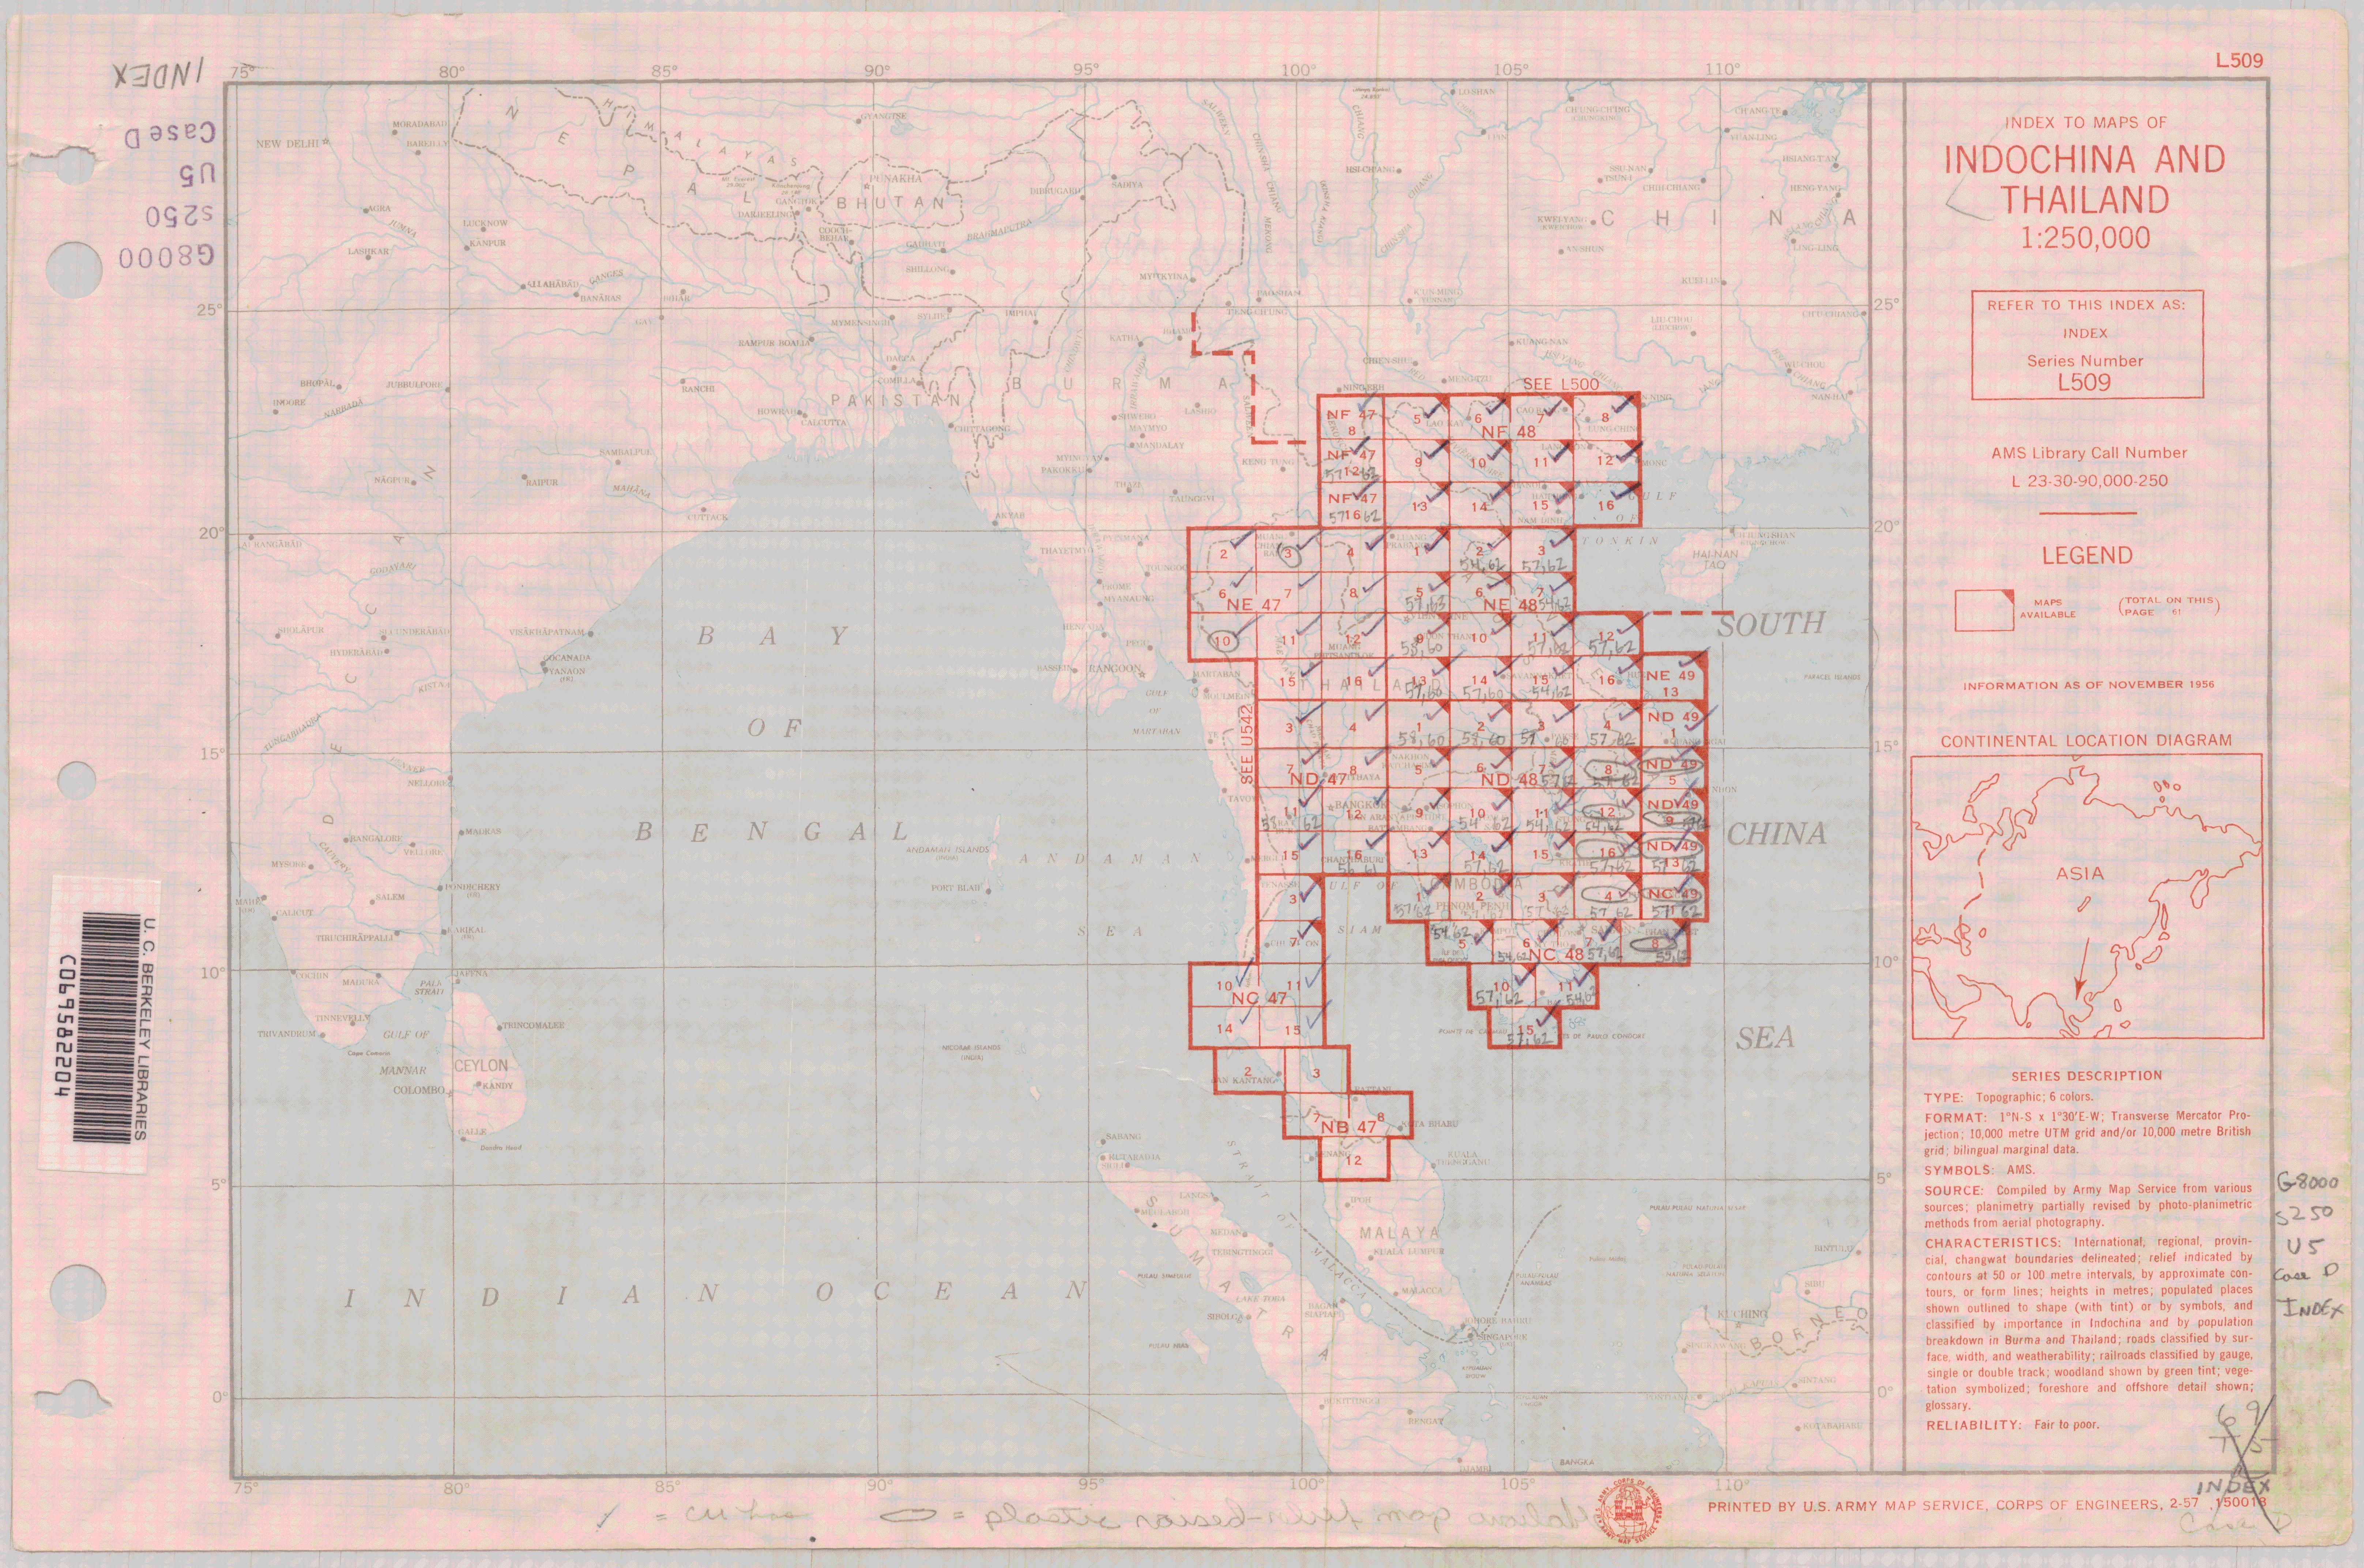 Us Army Map Service Ams Series Index Maps - Us-army-maps-india